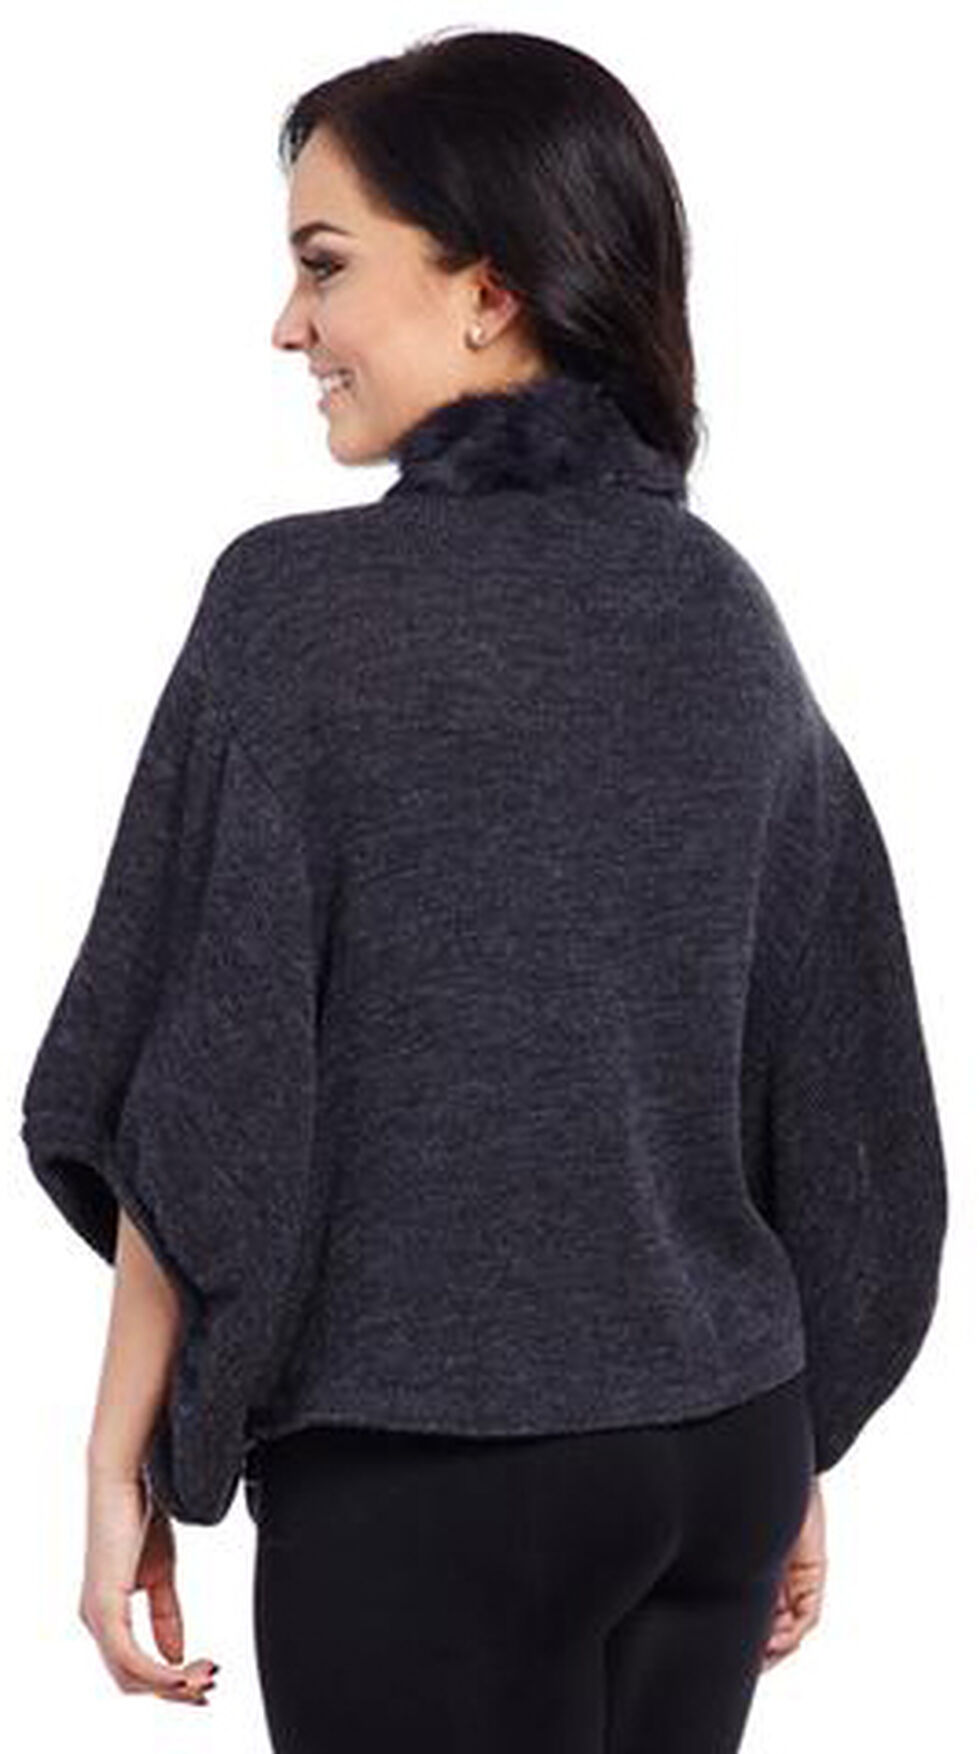 Cripple Creek Women's Charcoal Rabbit-Trimmed Sweater, Charcoal Grey, hi-res